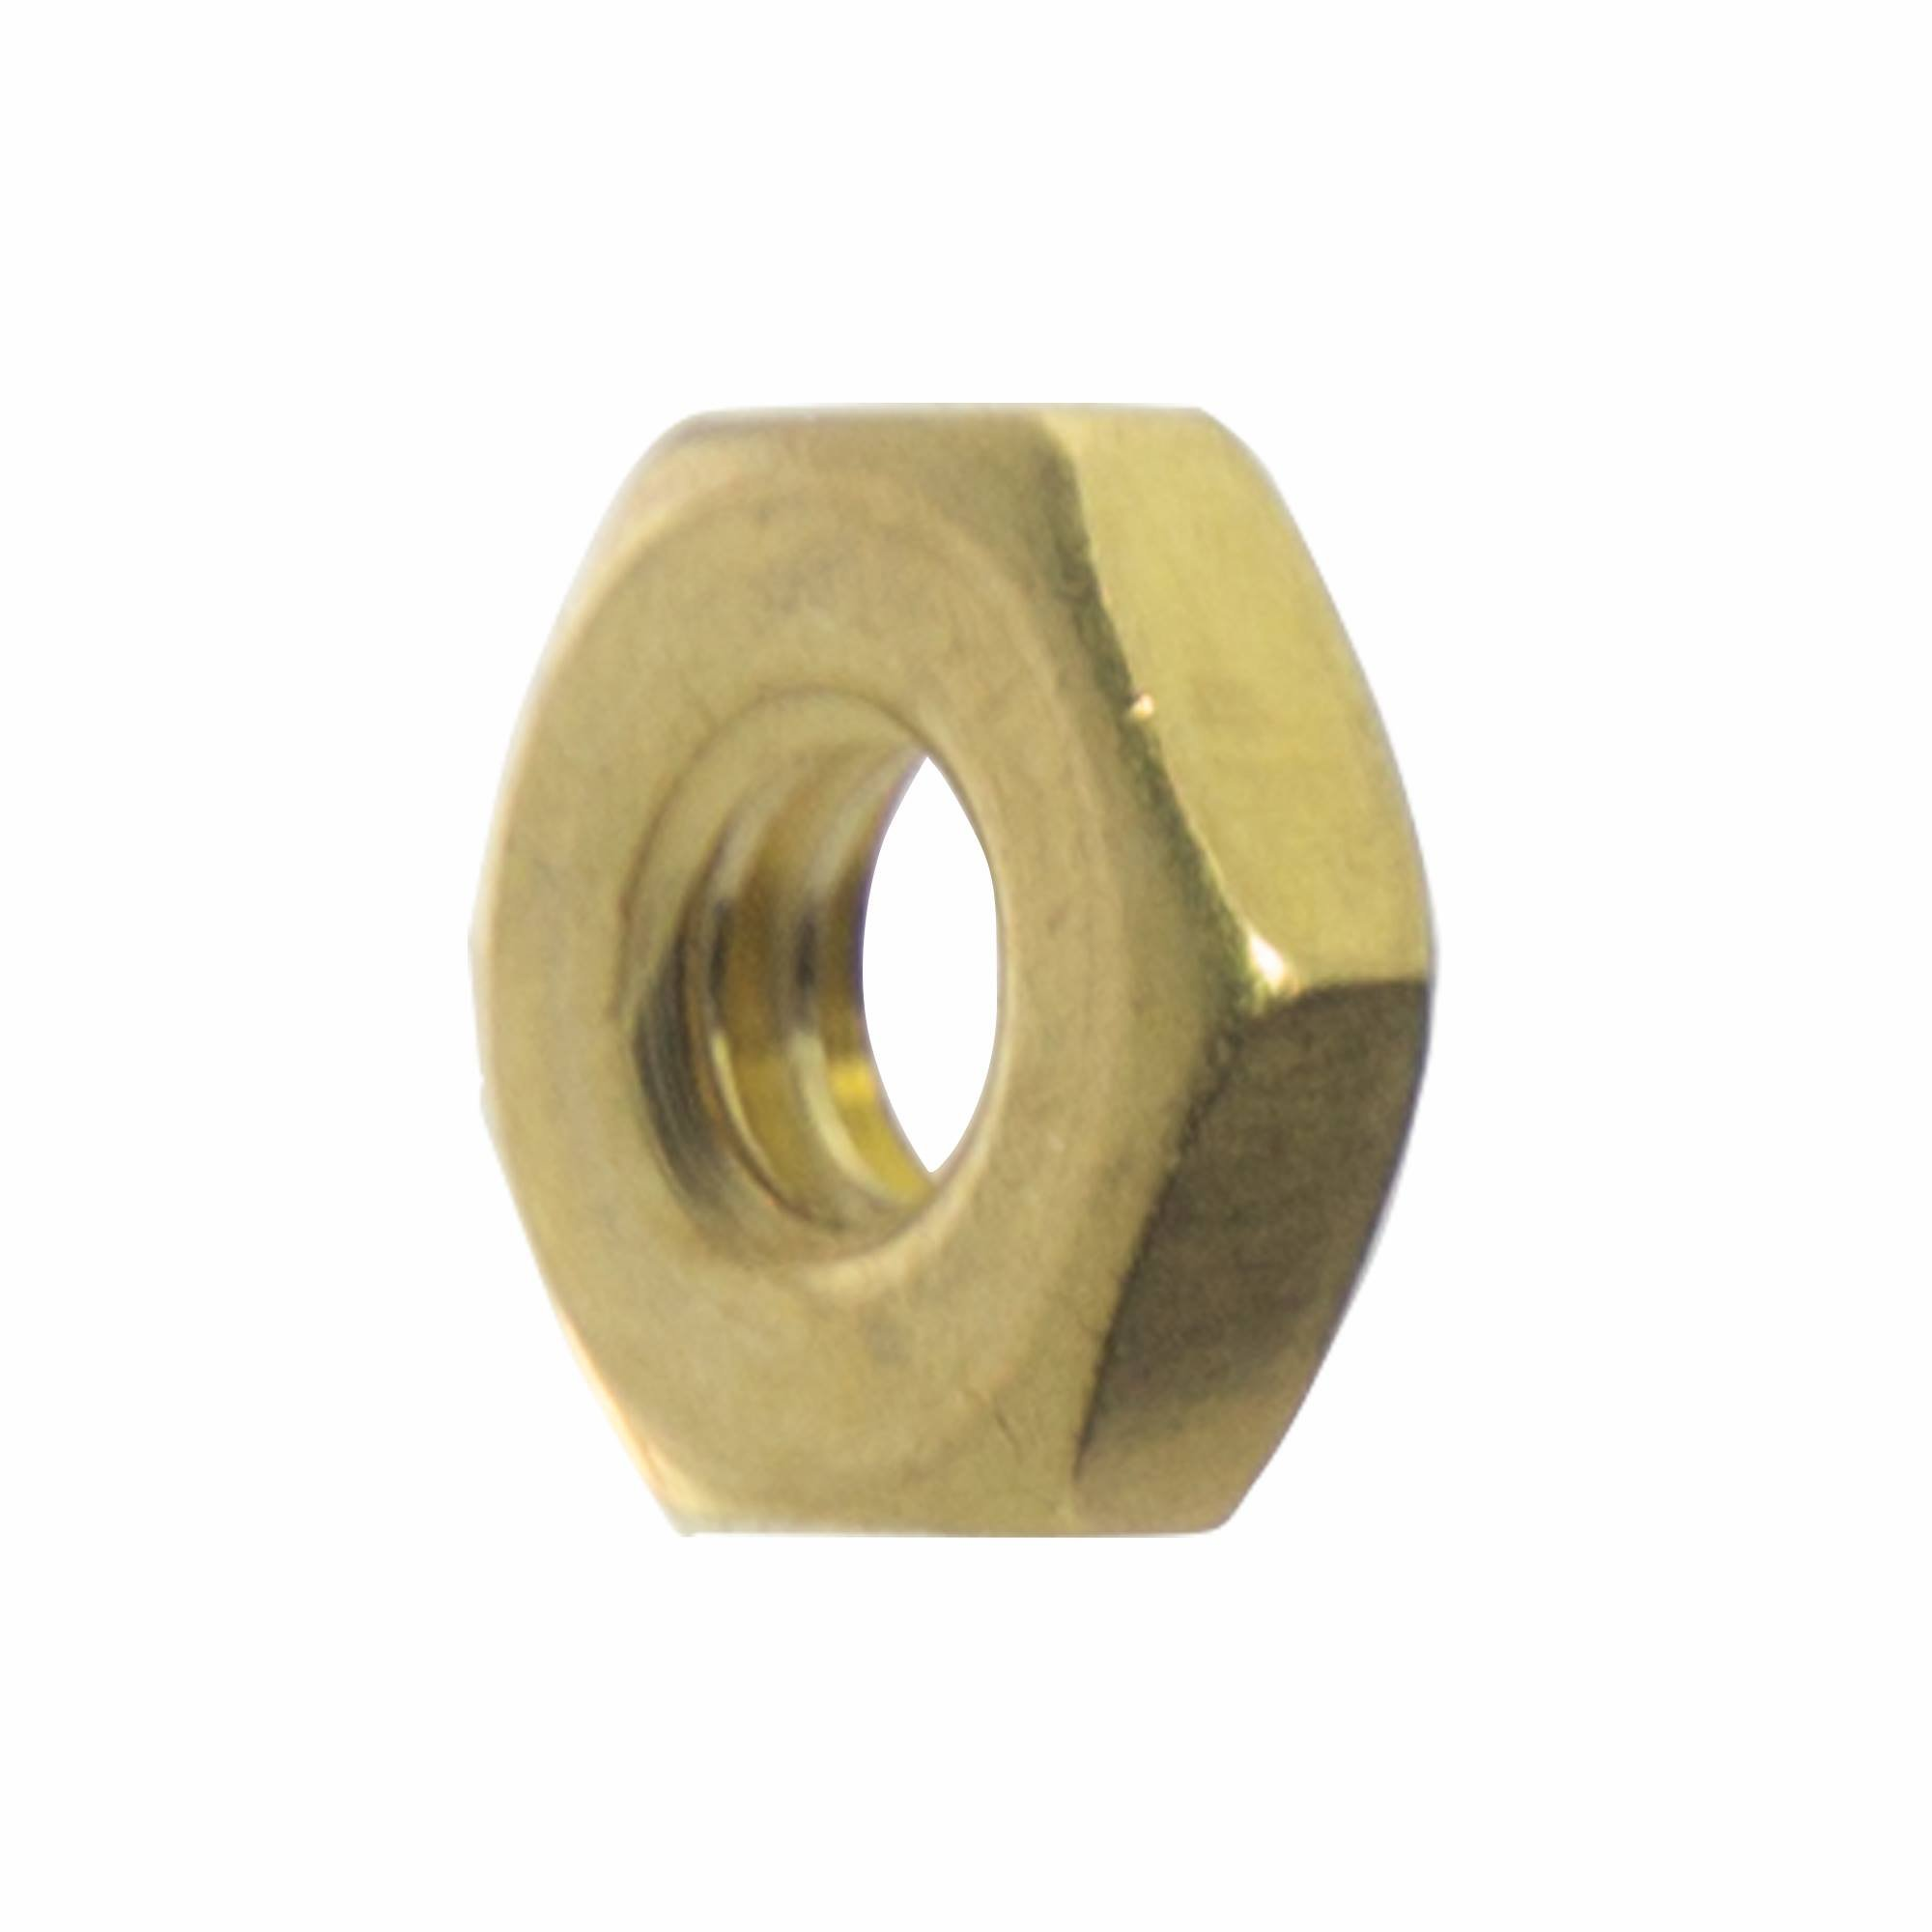 7//16 Length #10-24 Threads Plain Finish Slotted Drive Brass Machine Screw Round Head Pack of 100 7//16 Length Small Parts B000FMZ620